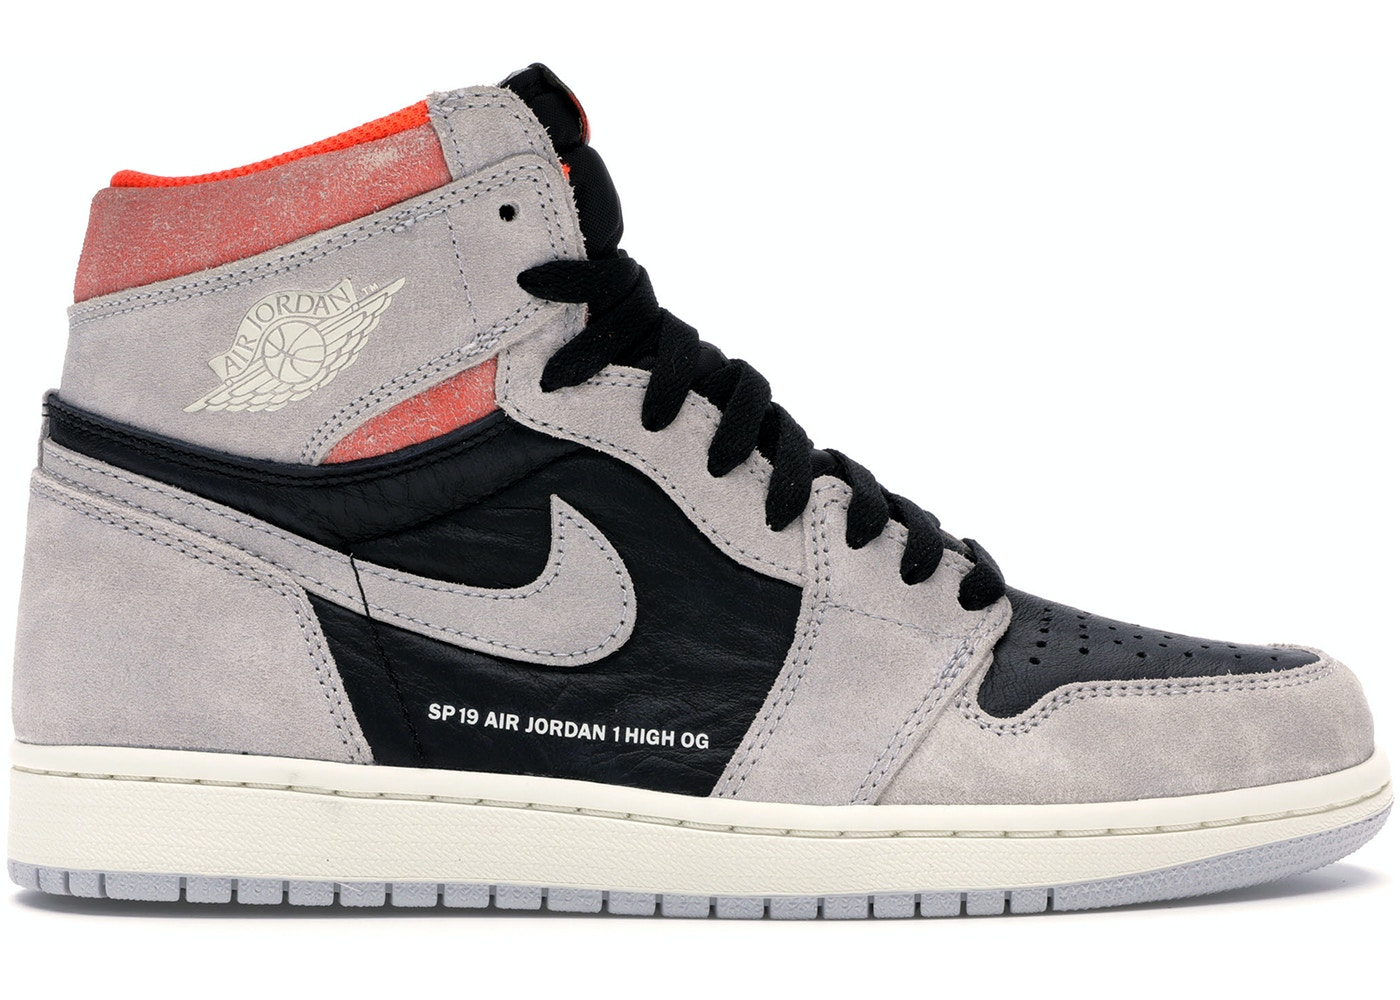 buy online 3a3ba 6a275 Buy Air Jordan 1 Shoes   Deadstock Sneakers